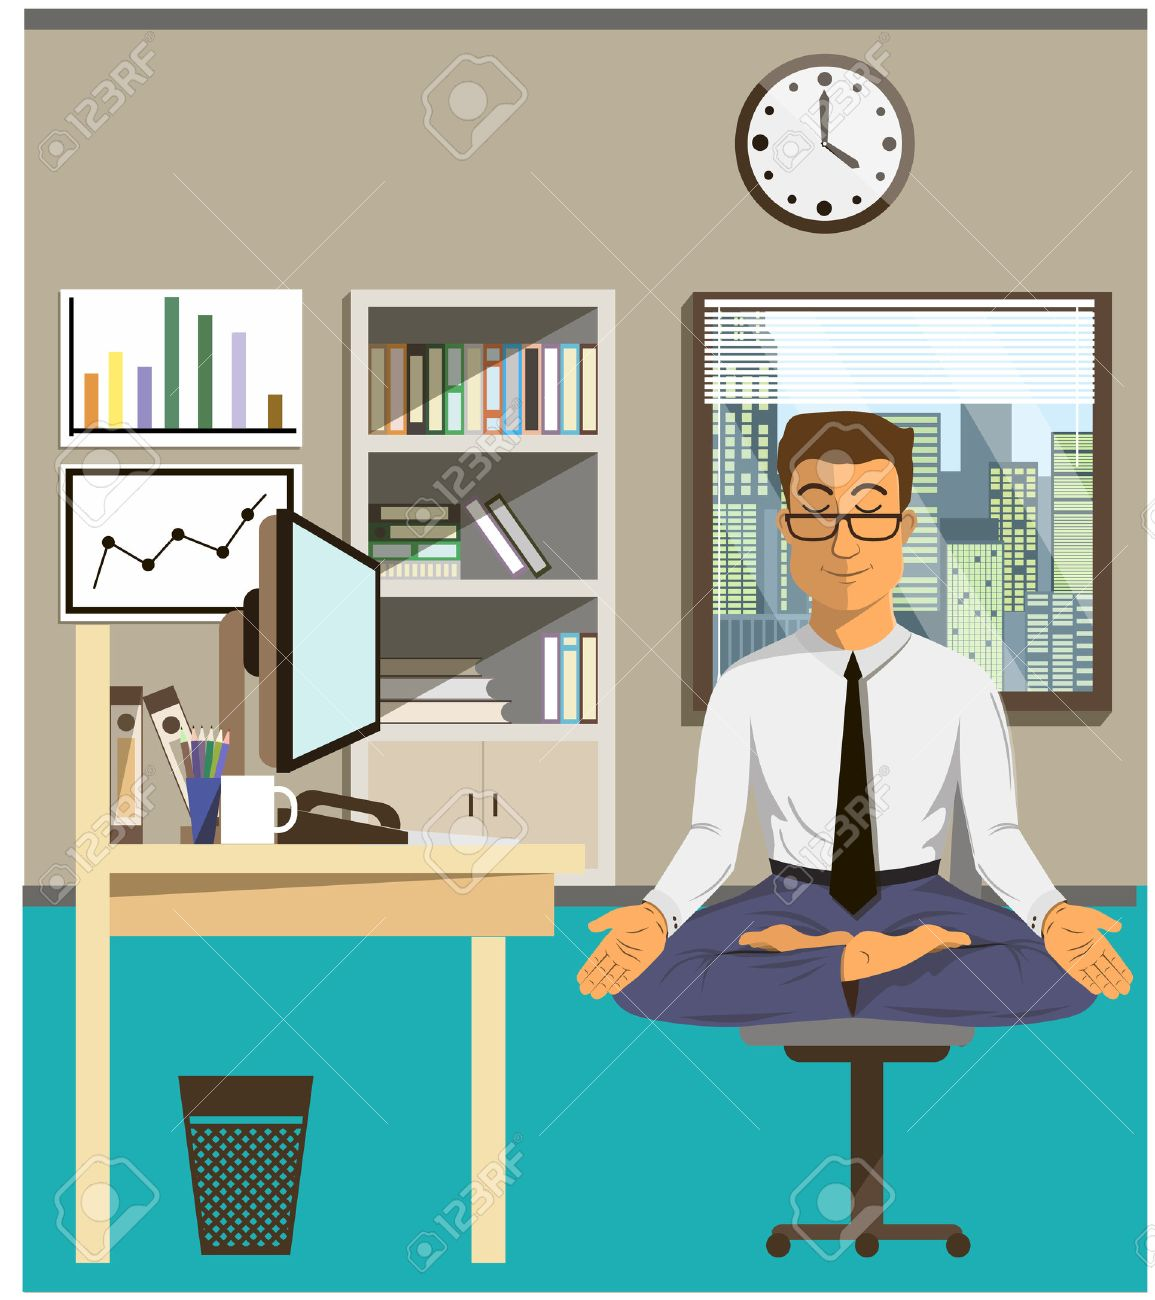 Illustration of the concept of relax and work balance. Office man doing Yoga to calm down the stressful emotion from multi-tasking and very busy working. - 47919942